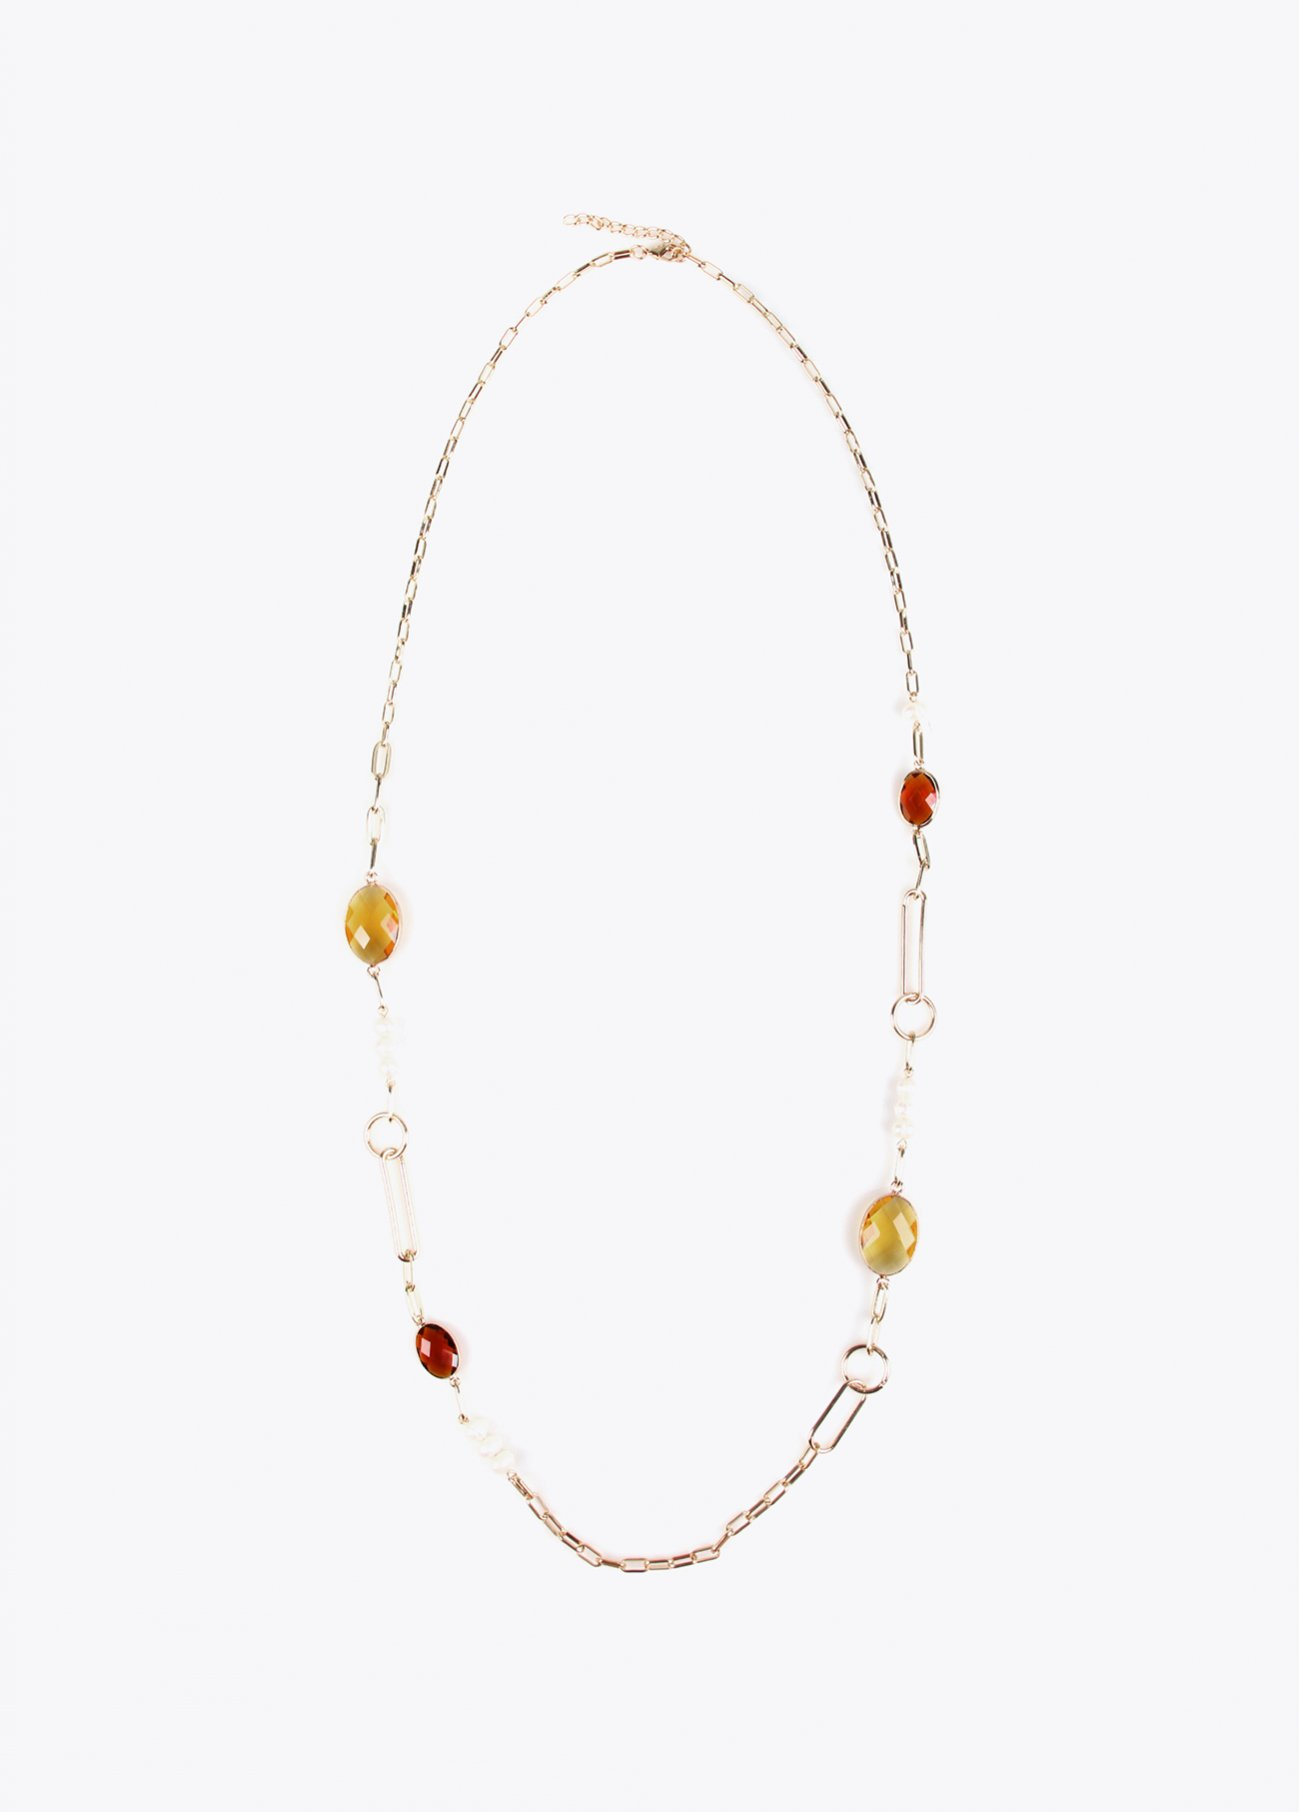 Long contrast necklace with glass stones